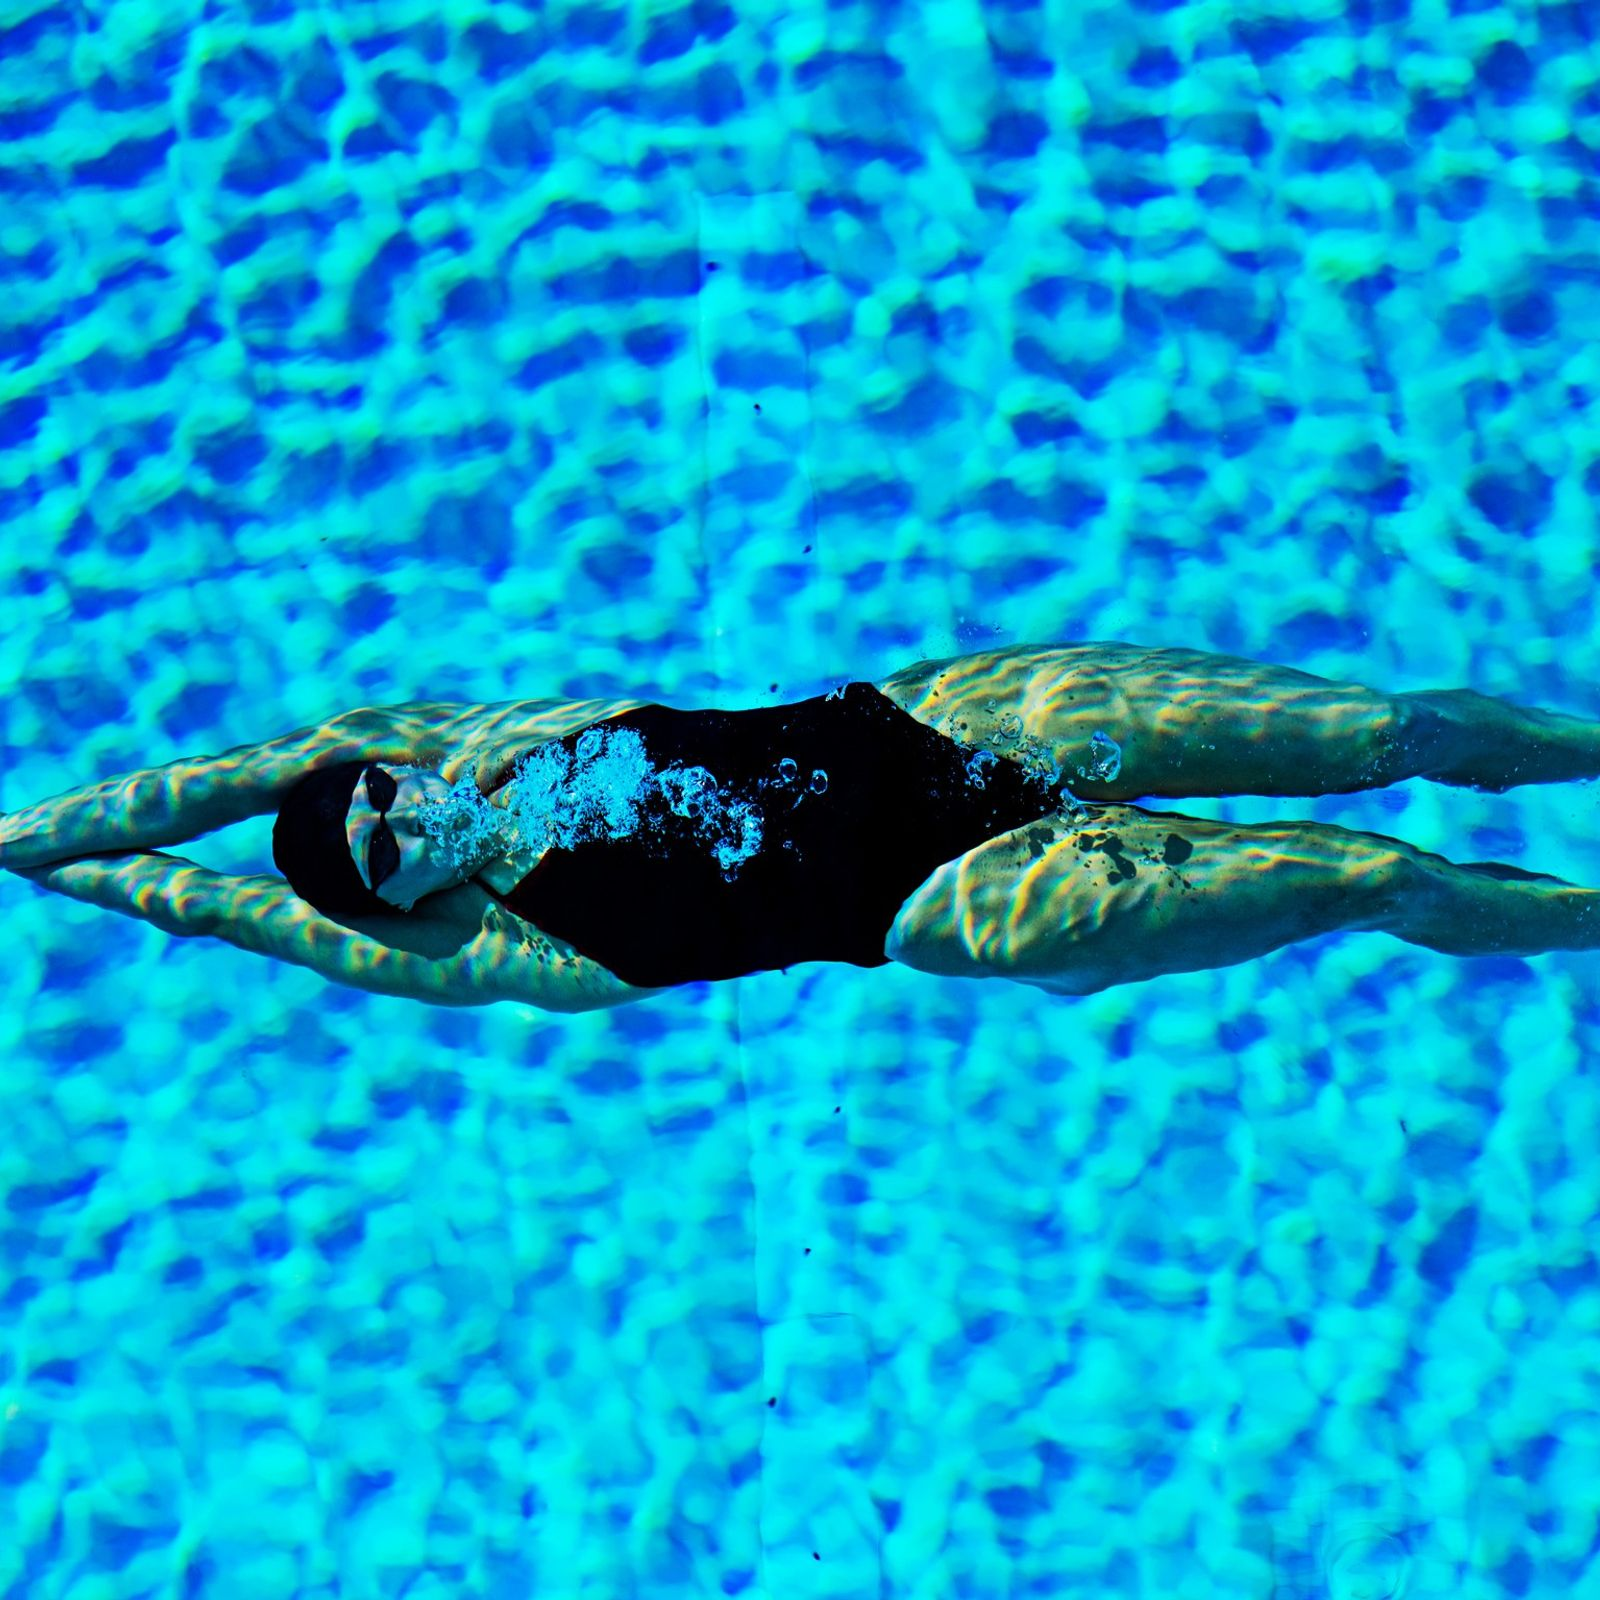 Swimmer Katie Ledecky shattered her own record in the 1,500-metre freestyle swimming event by five seconds ...